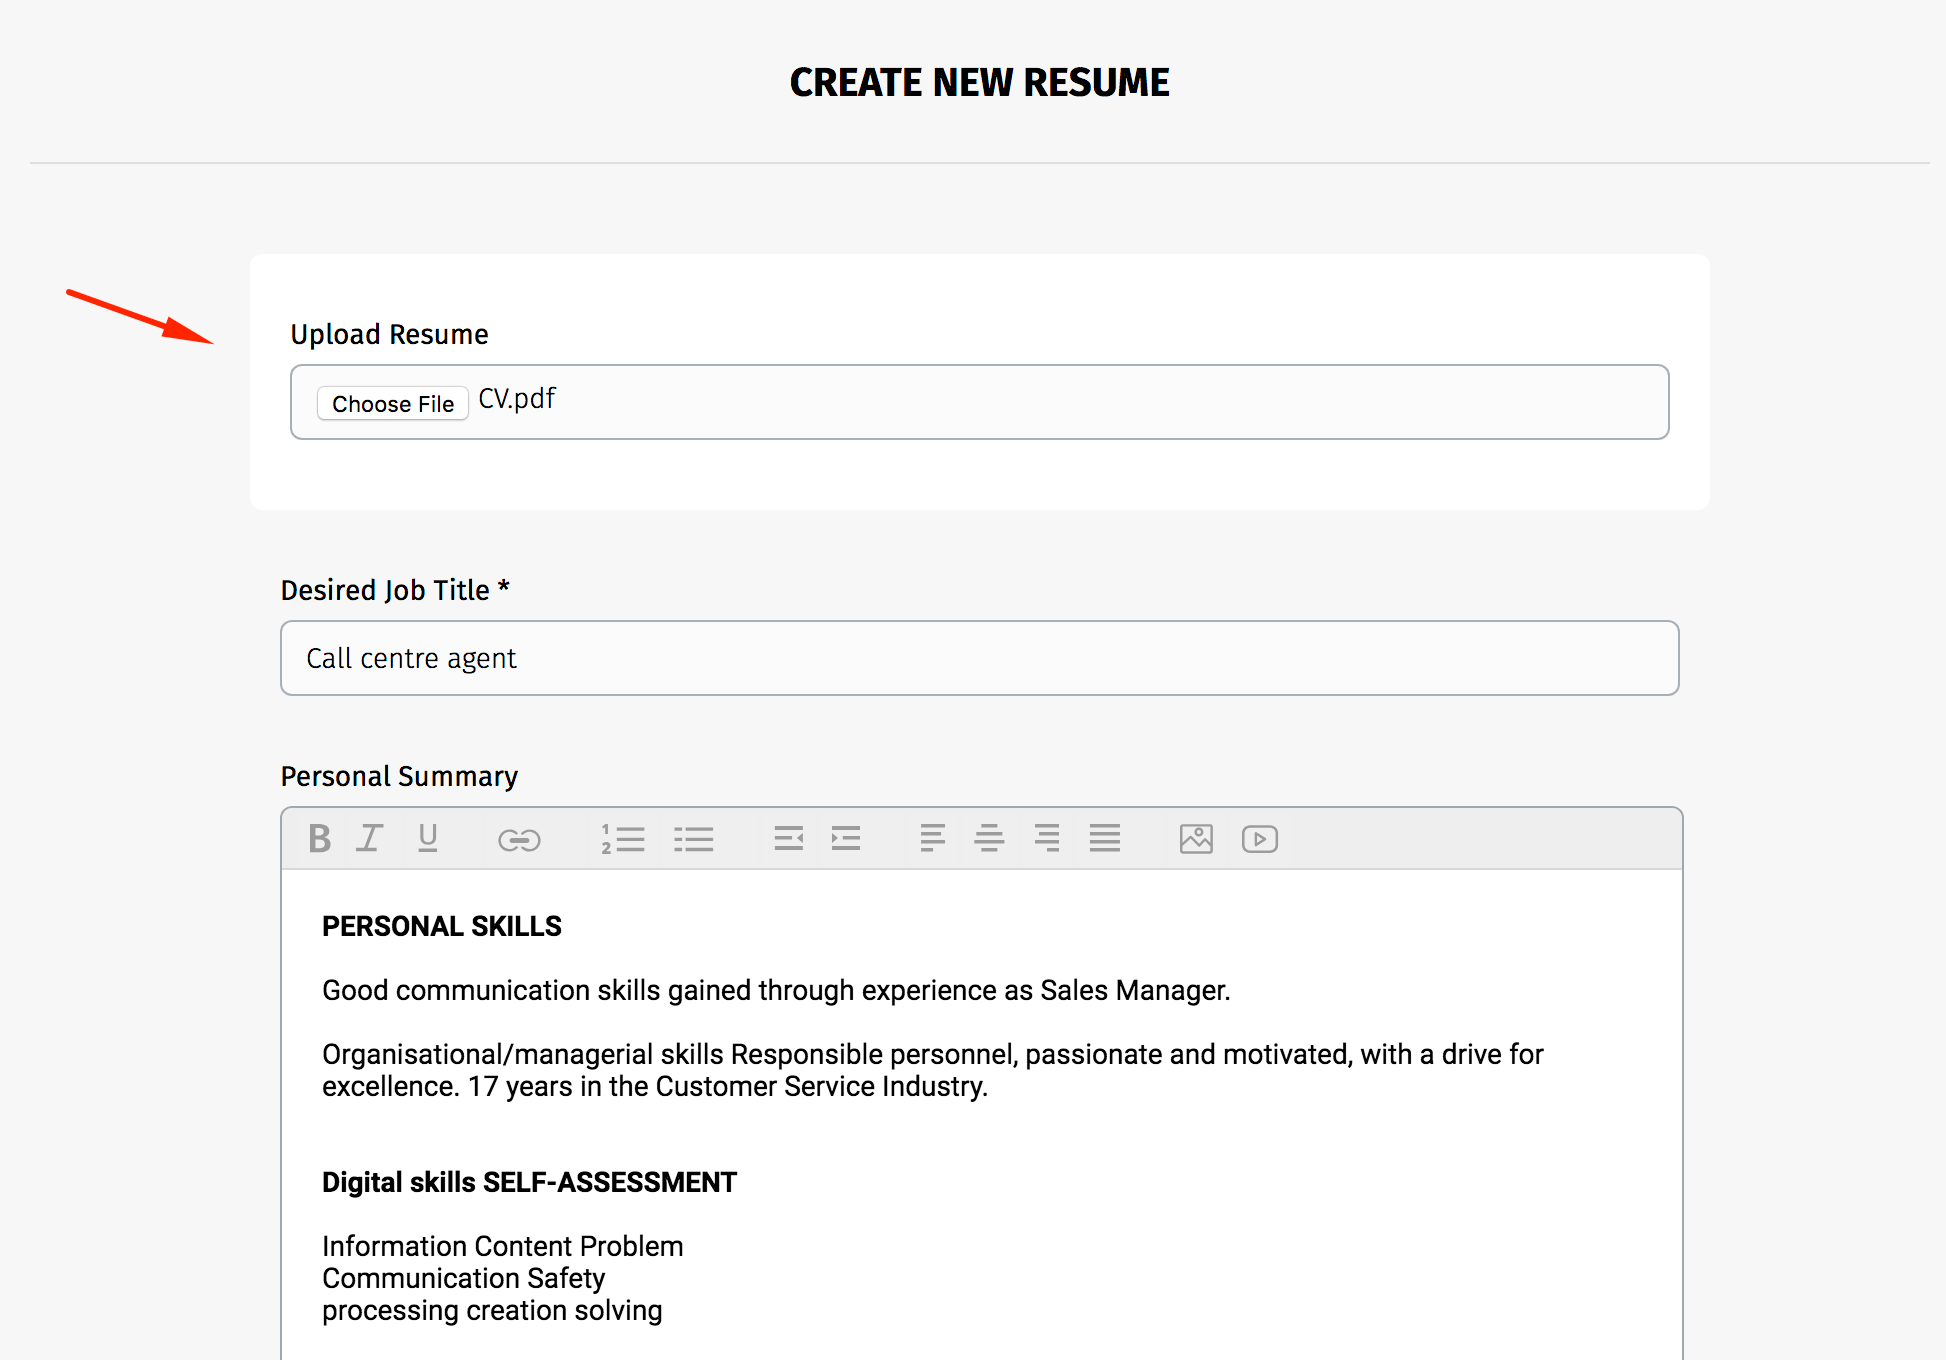 upload resume document and display wp